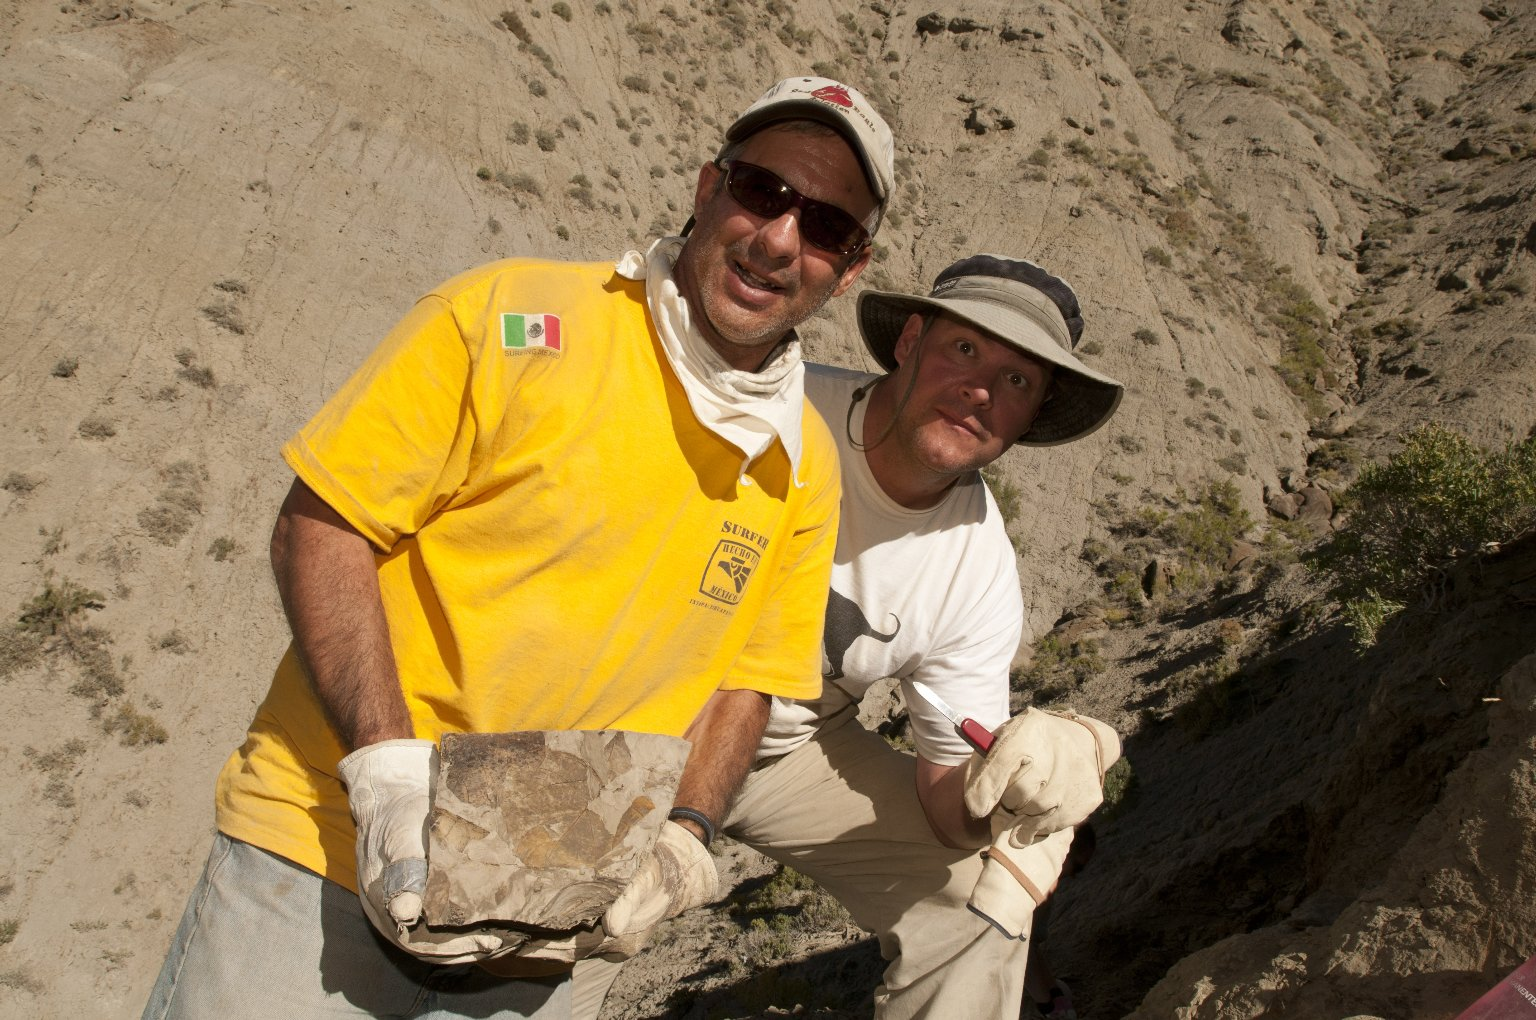 L-R: A DMNS Volunteer holds a rock with leaf specimens after it has been unveiled by Dr. Kirk Johnson holding the knife on the Kaiparowits Plateau.